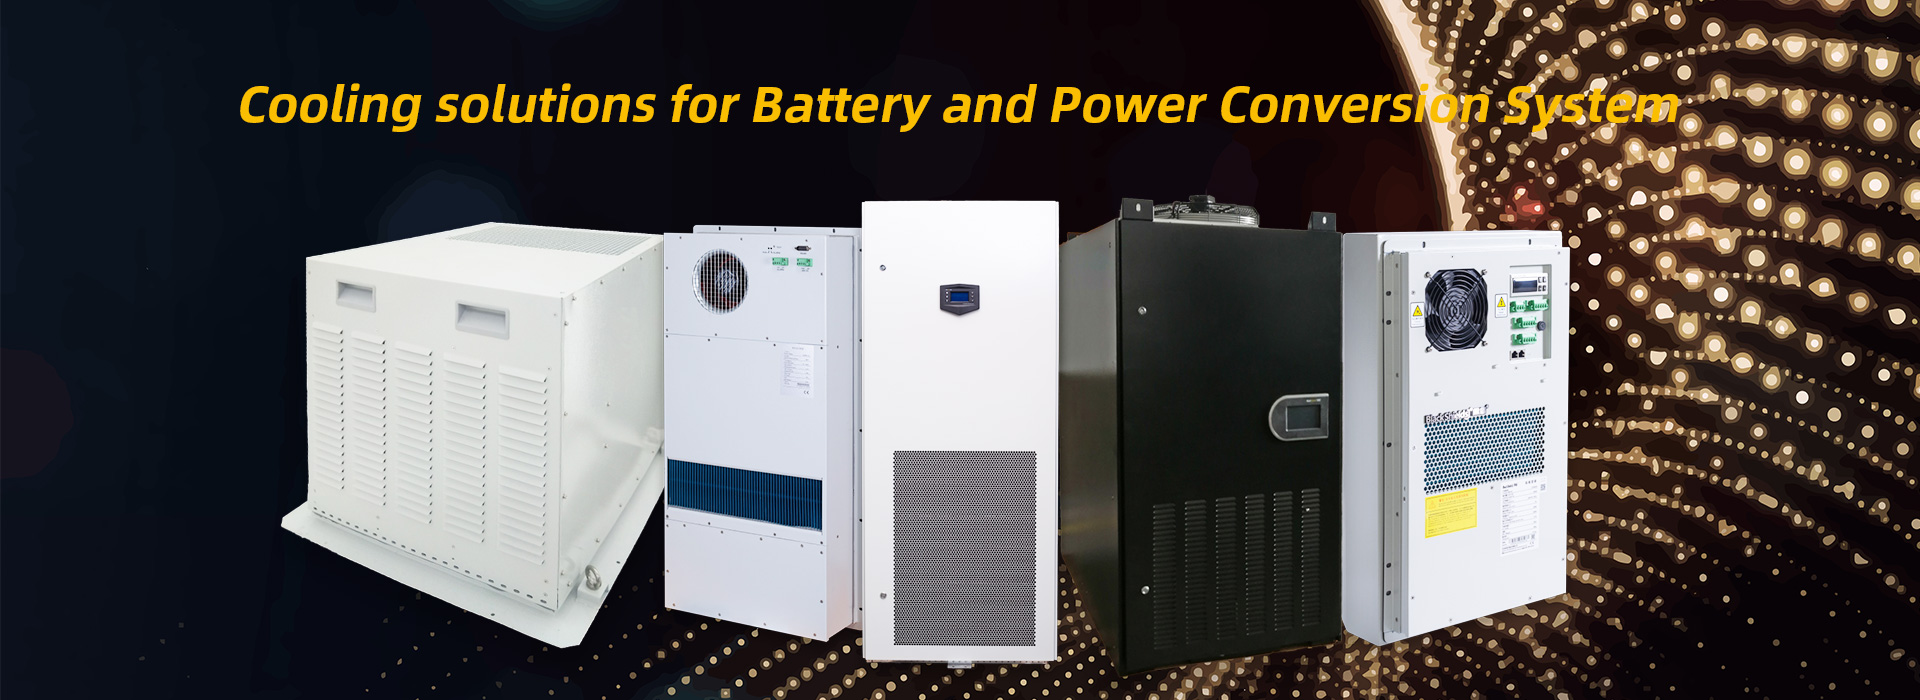 Cooling solutions for Battery and Power Conversion System